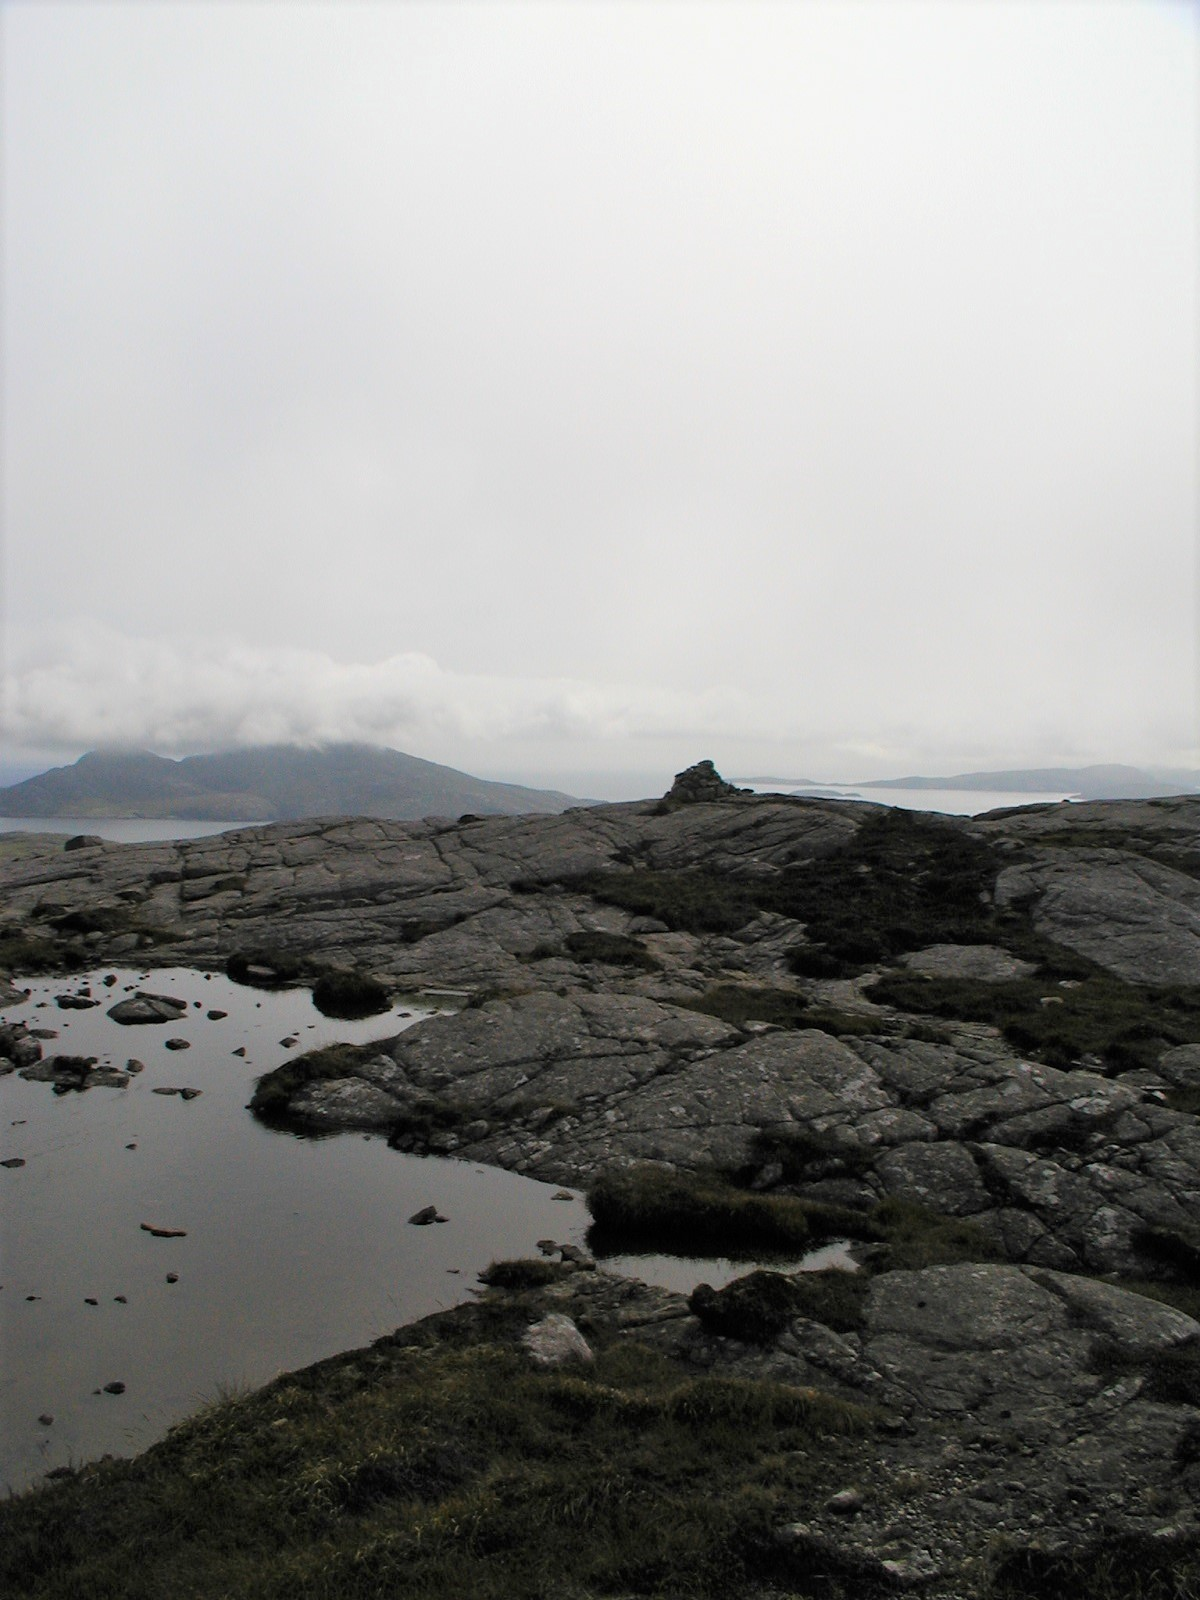 Cairn on Vatersay